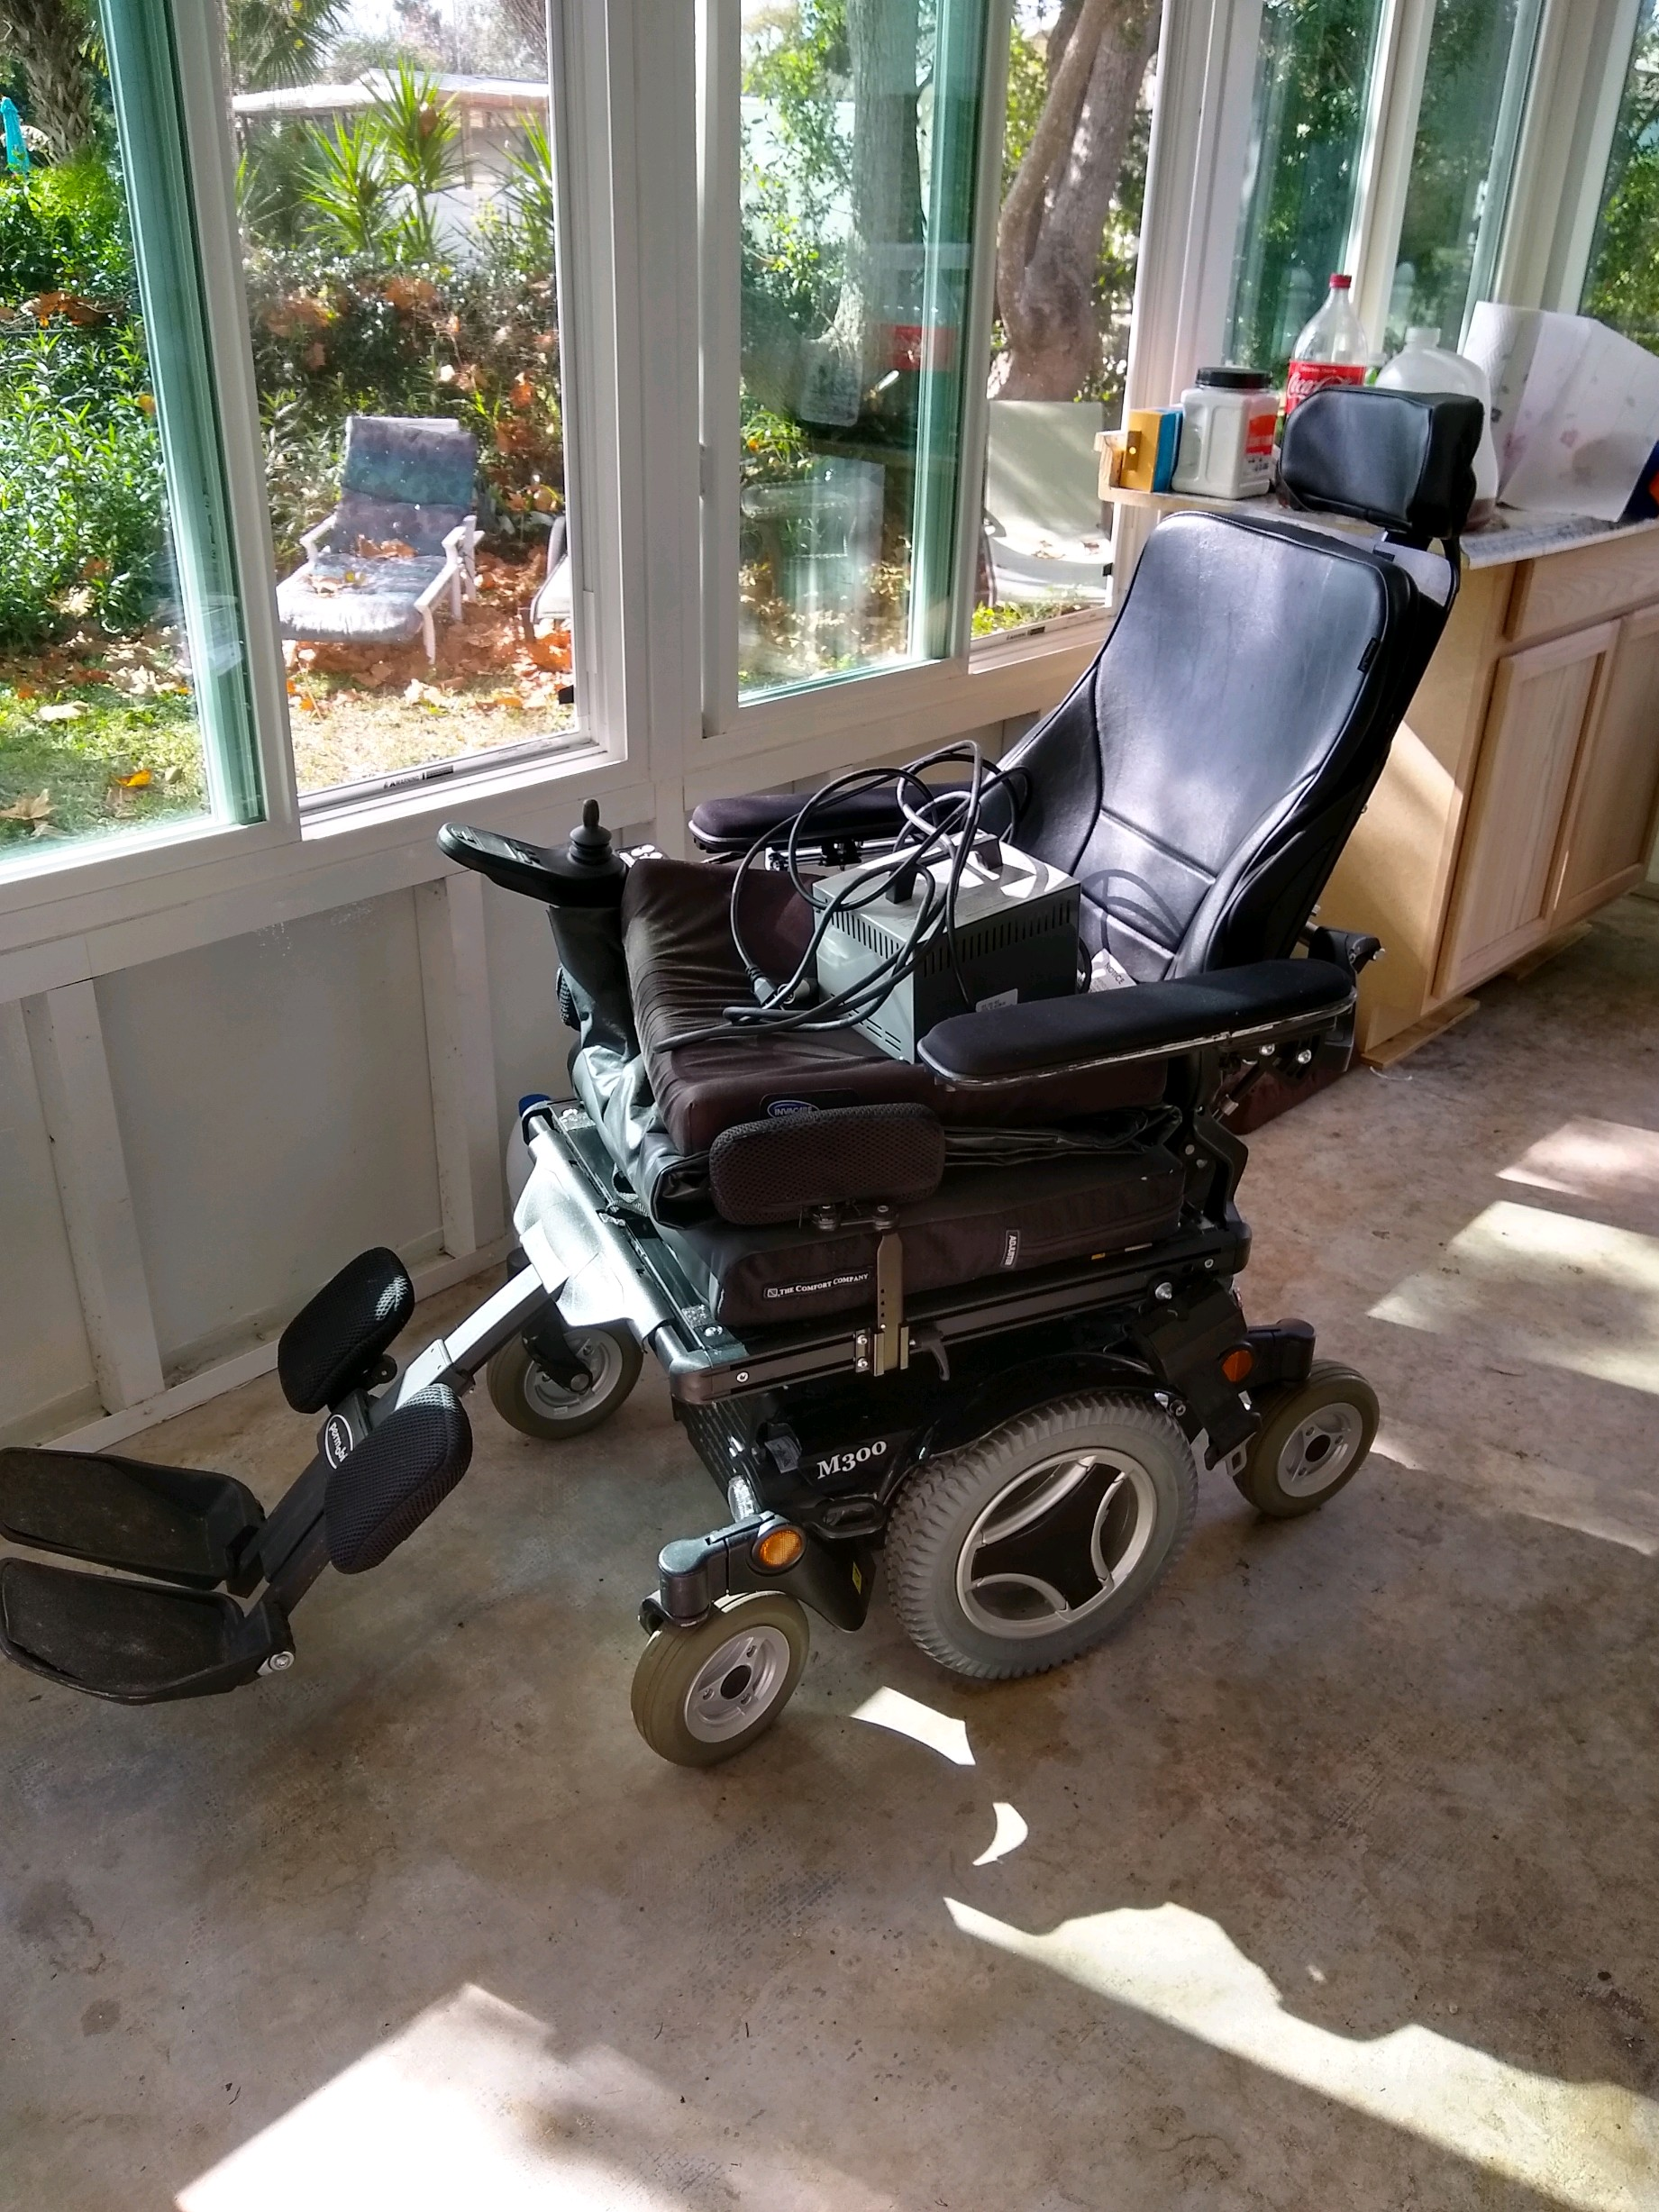 the best attitude 0347d d9c2c Permobil M300 - Buy   Sell Used Electric Wheelchairs, Mobility Scooters    More!